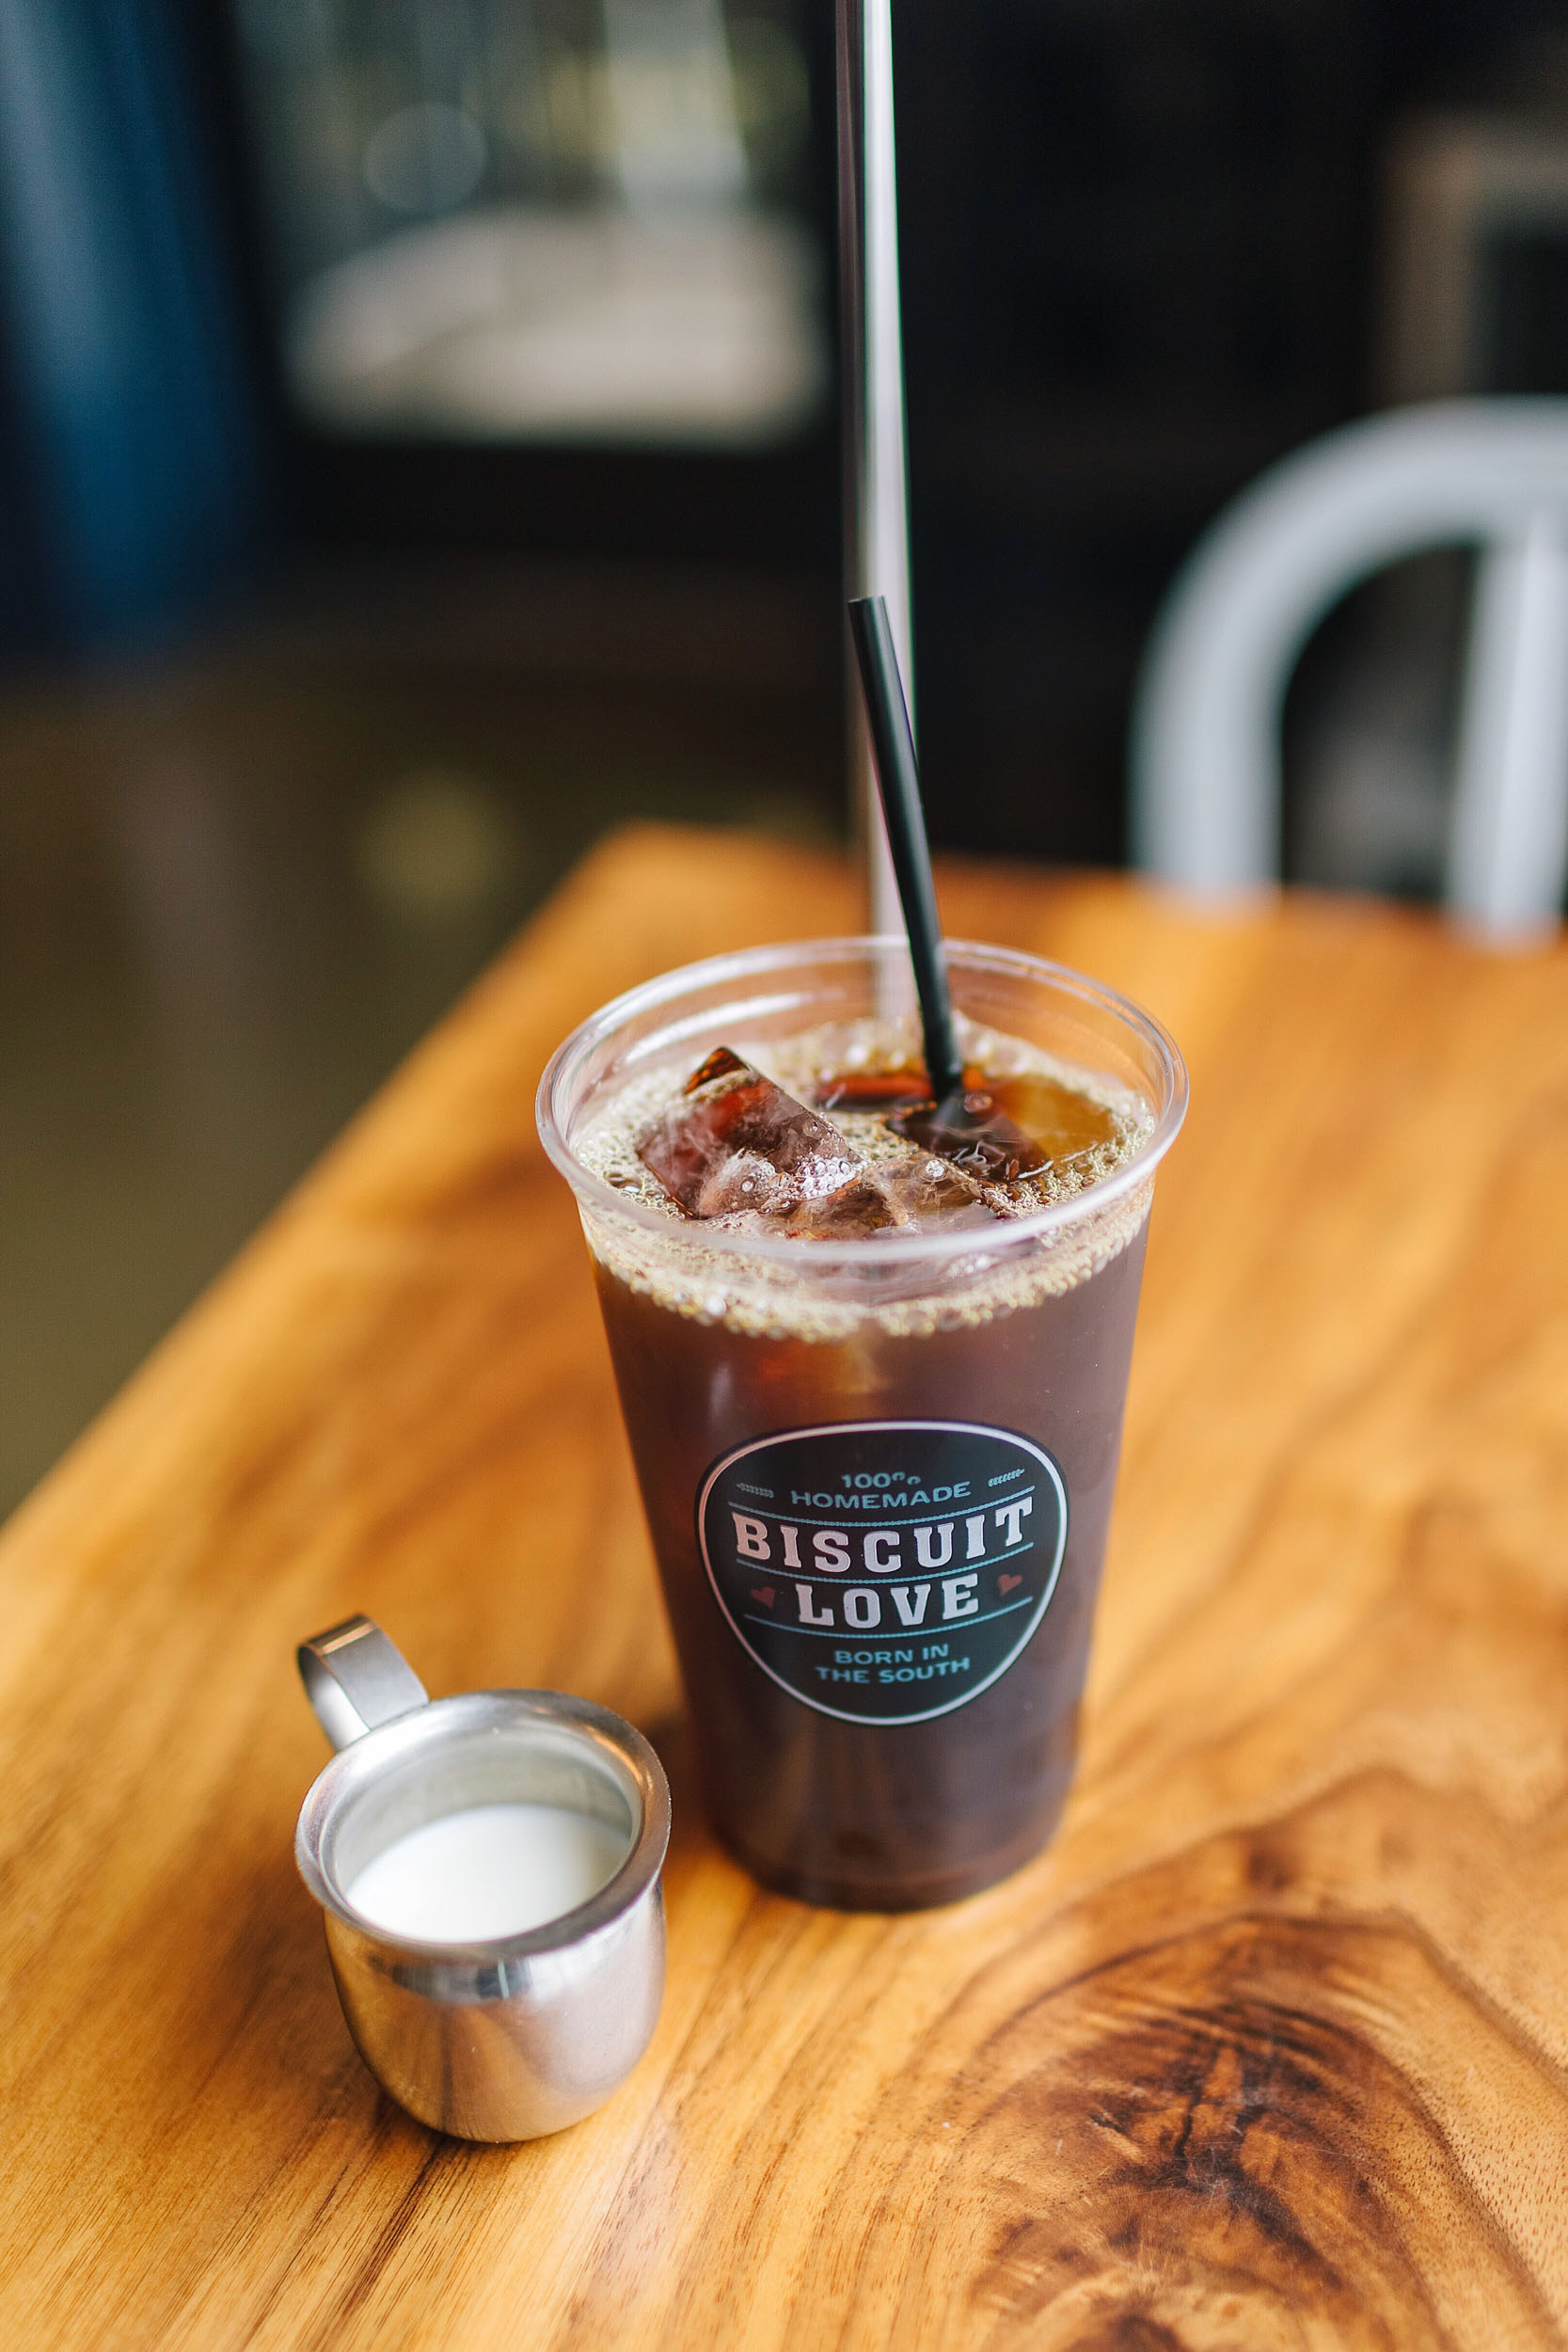 Iced coffee at Biscuit Love in Nashville